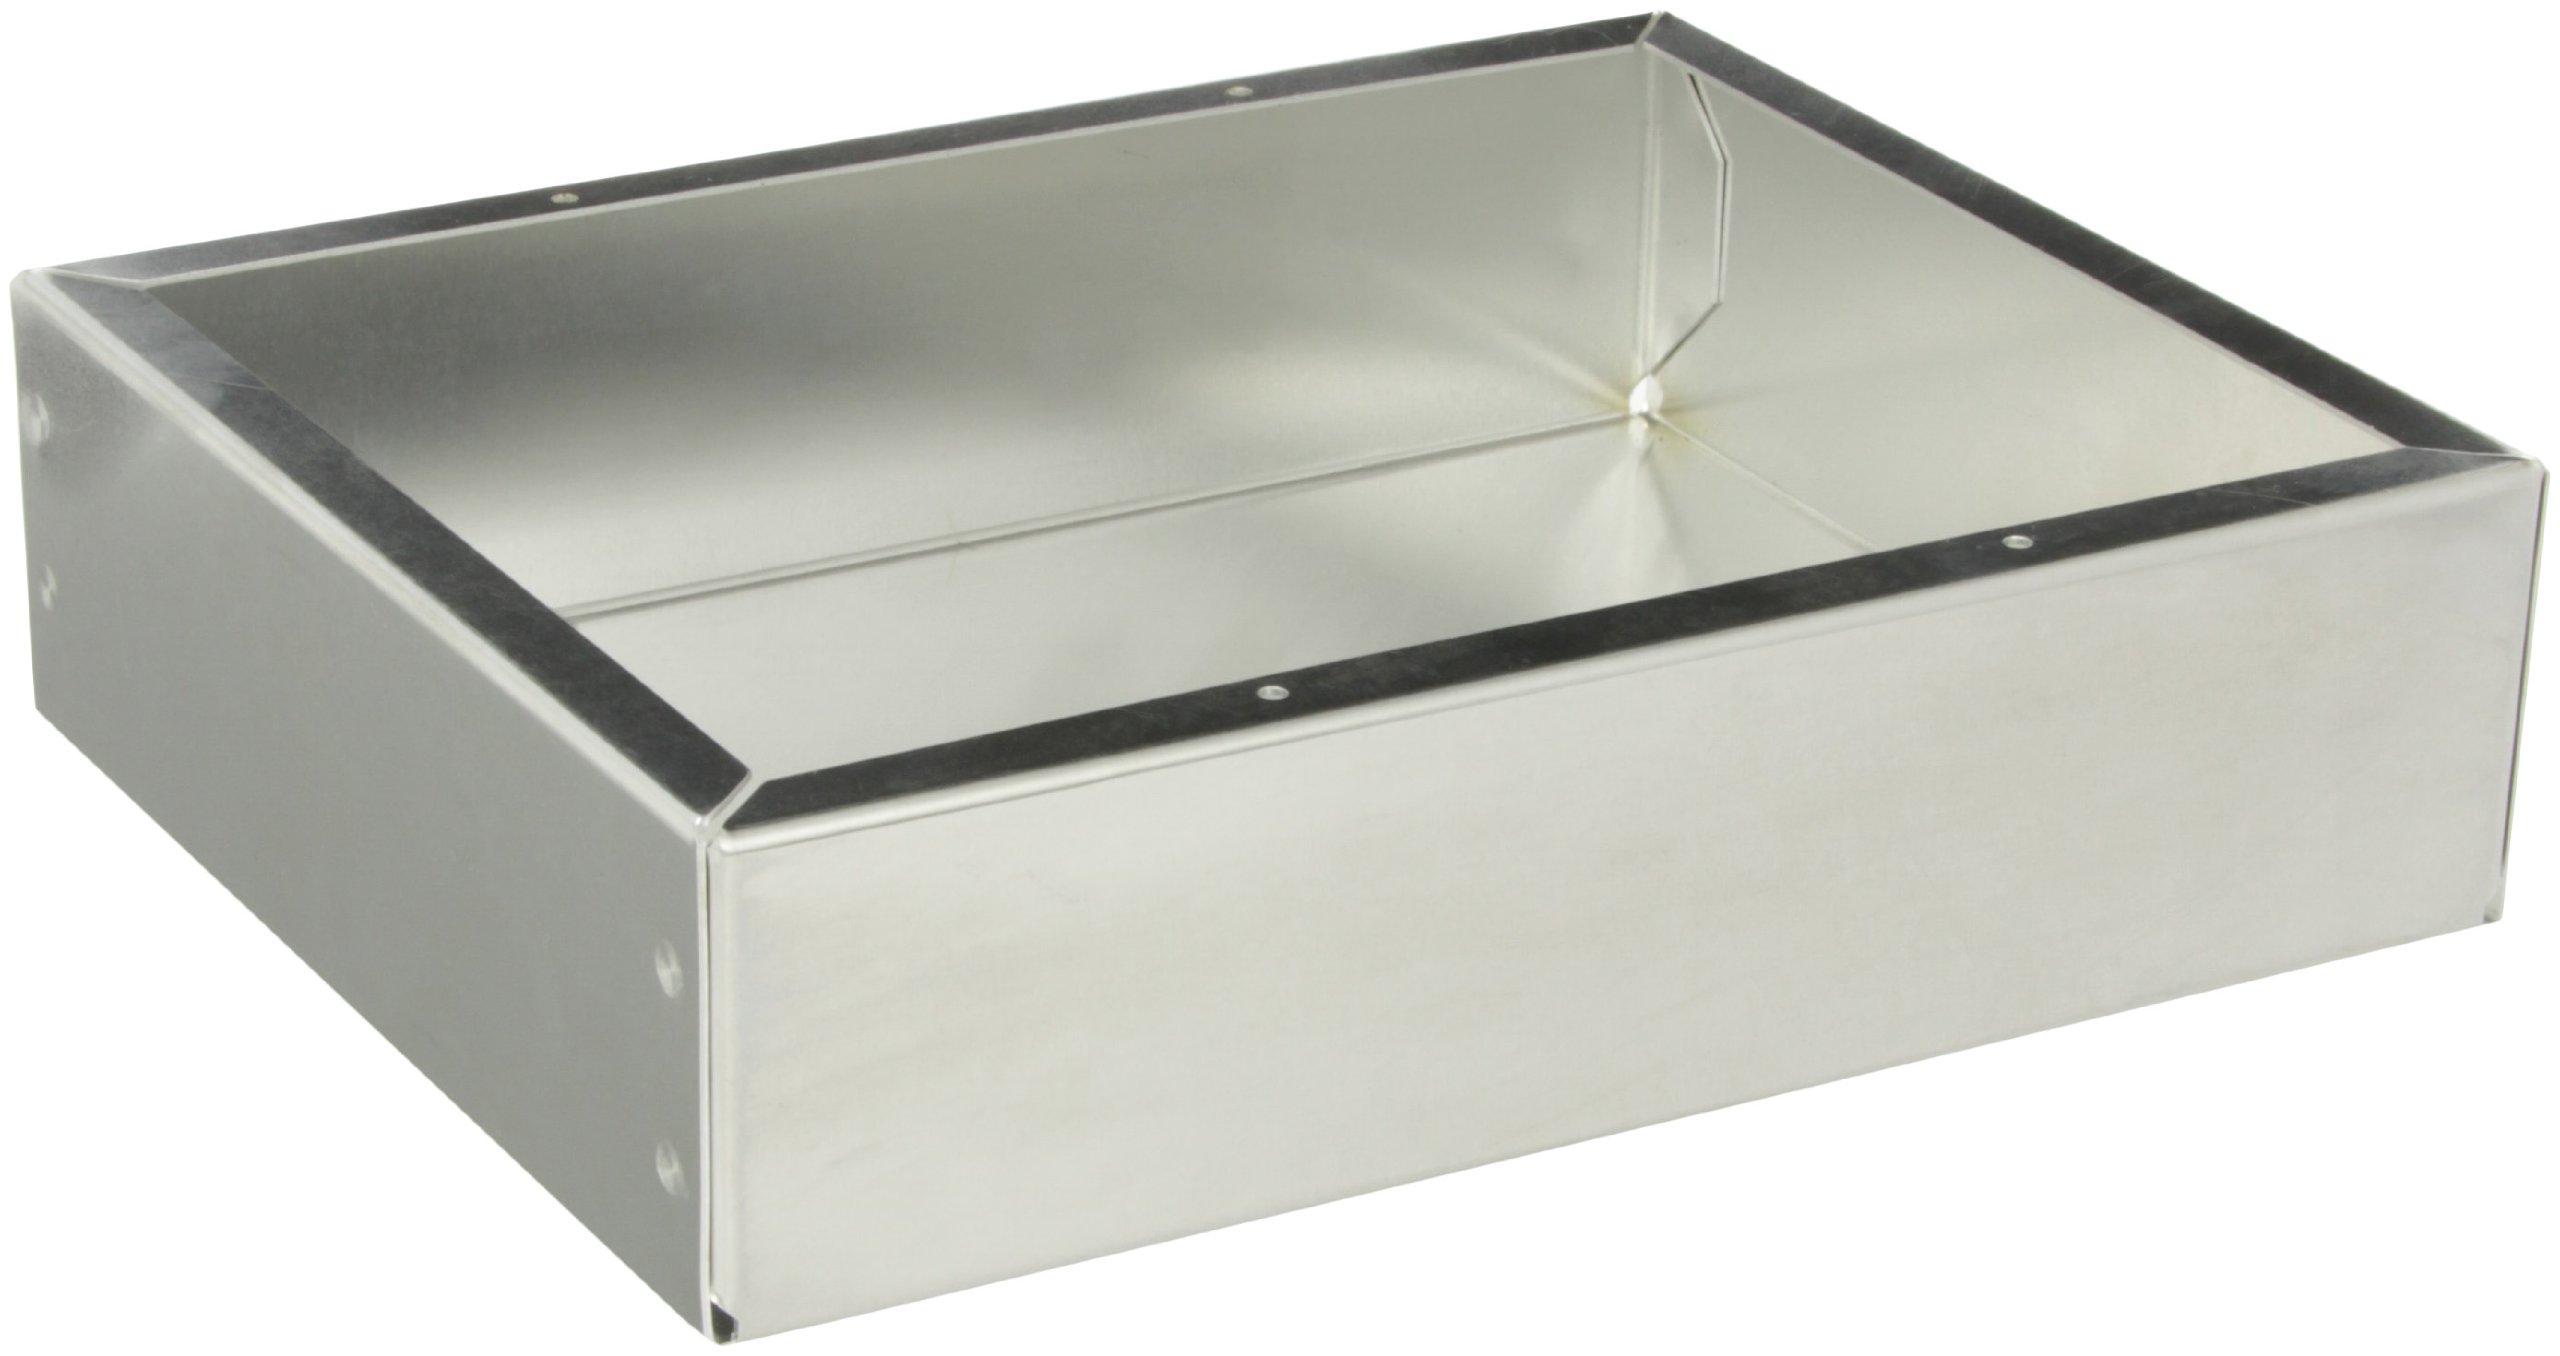 BUD Industries AC-1418 Aluminum Chassis, 10'' Length x 8'' Width x 2-1/2'' Height, Natural Finish